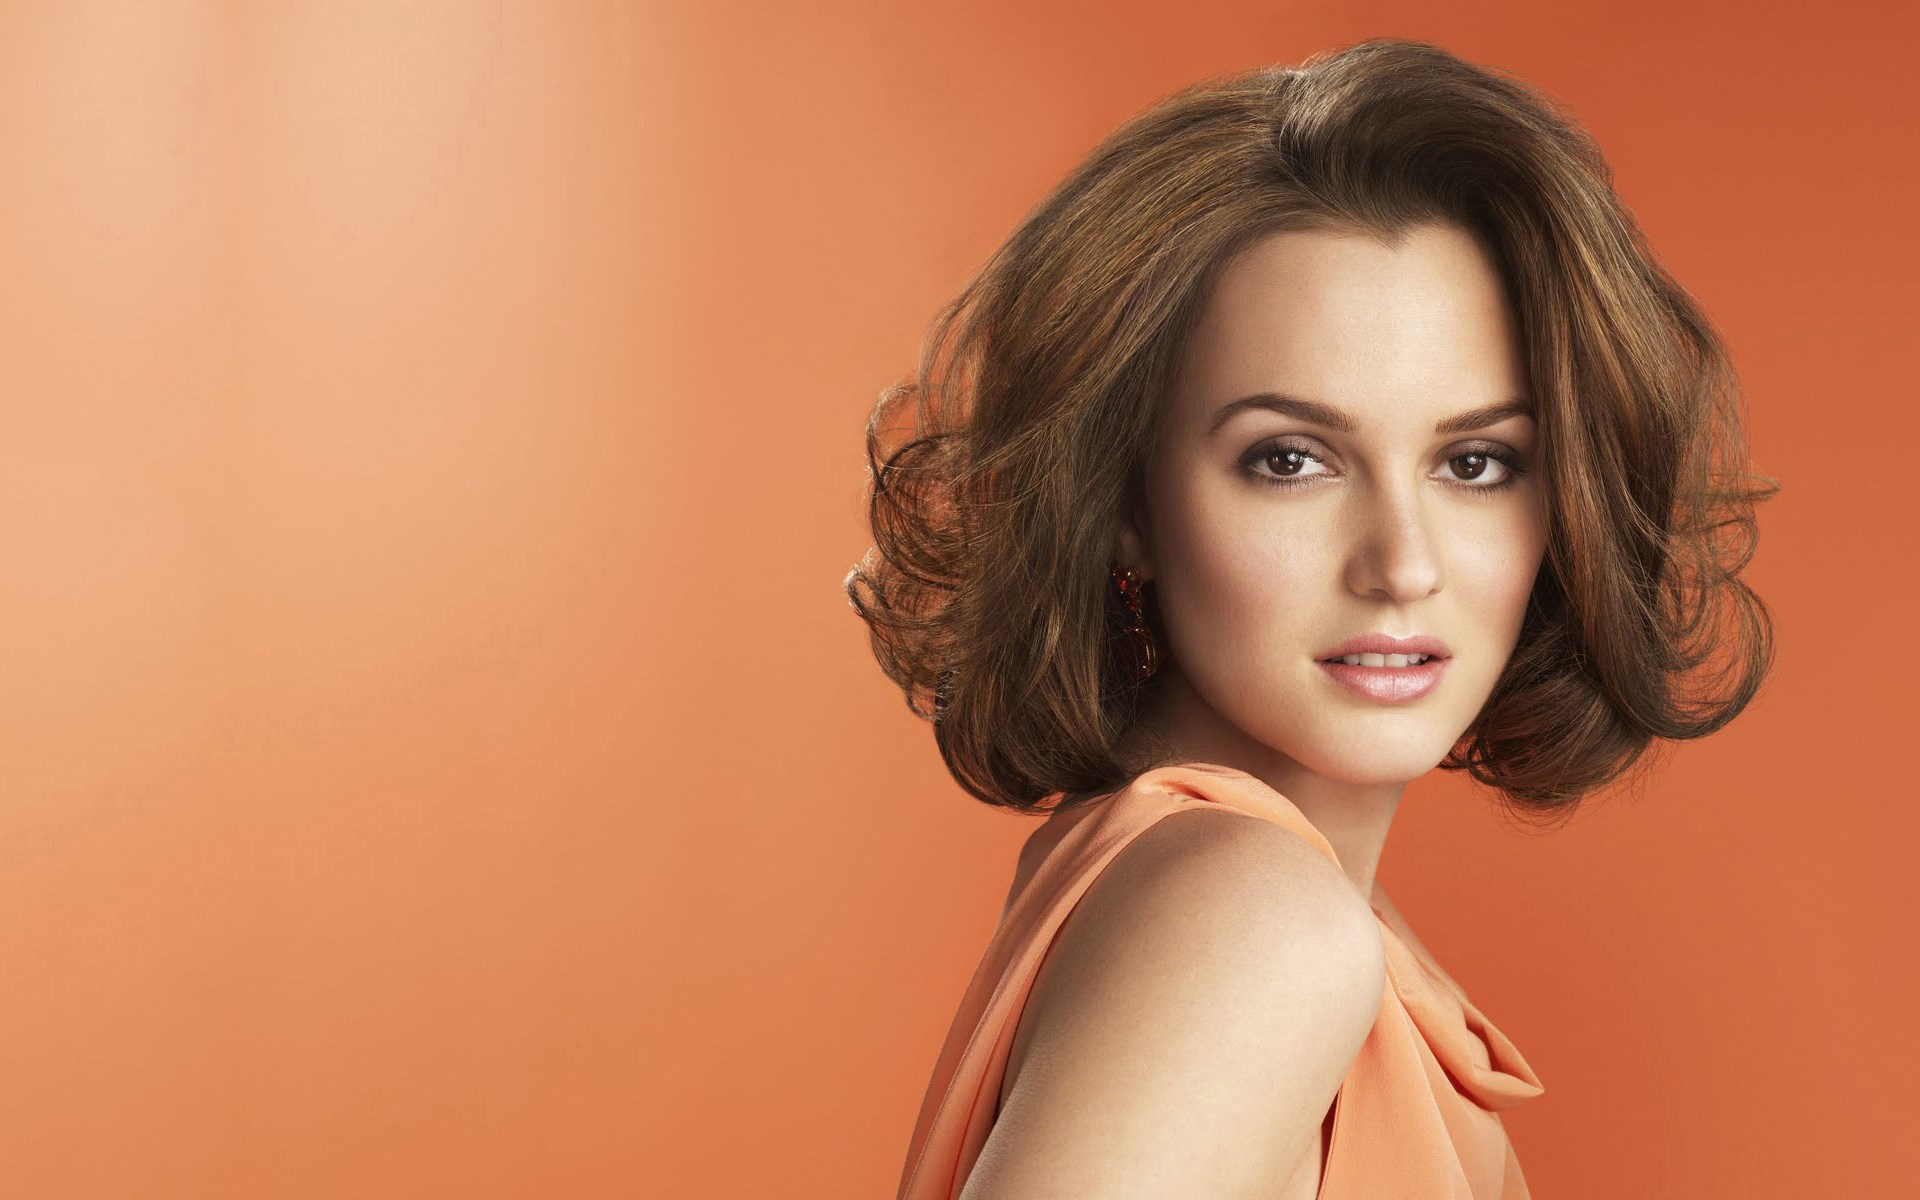 Leighton Meester Portrait Actress Singer Girl